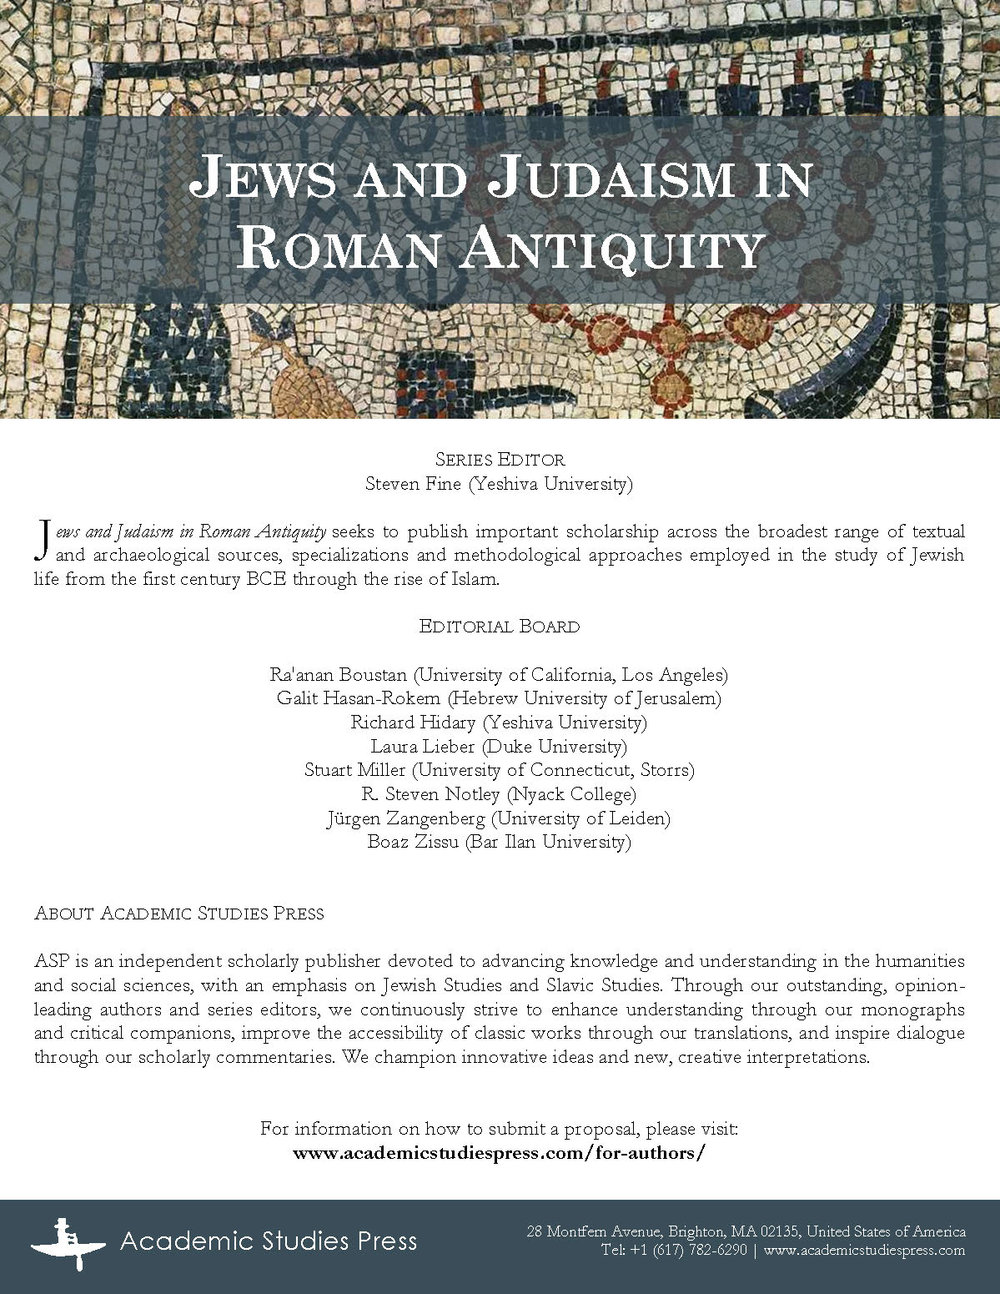 Jews and Judaism in Roman Antiquity Flyer.jpg